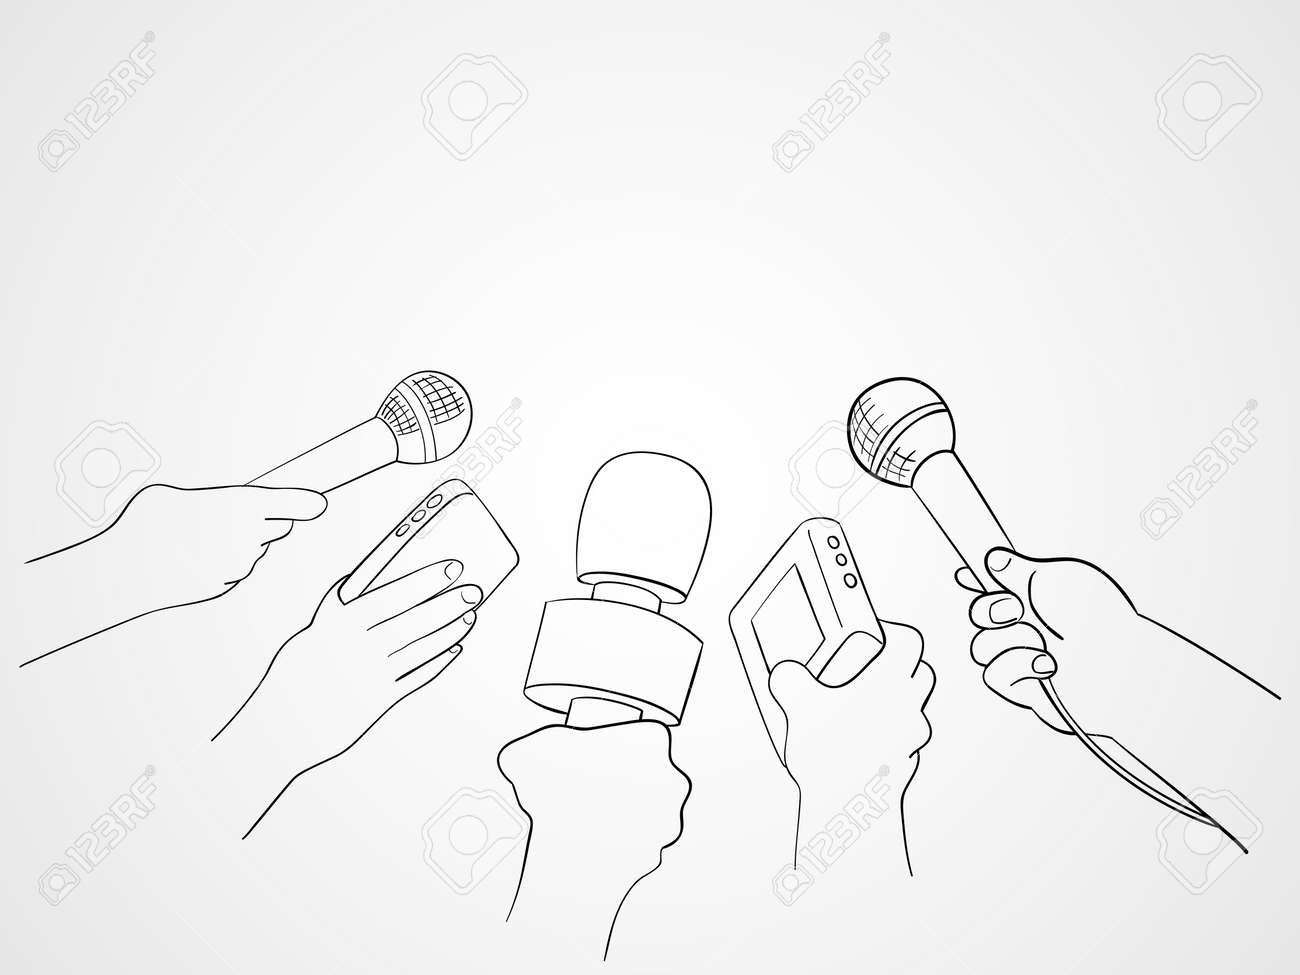 Line Art Hand : Line art illustration of hands holding microphones and recorders